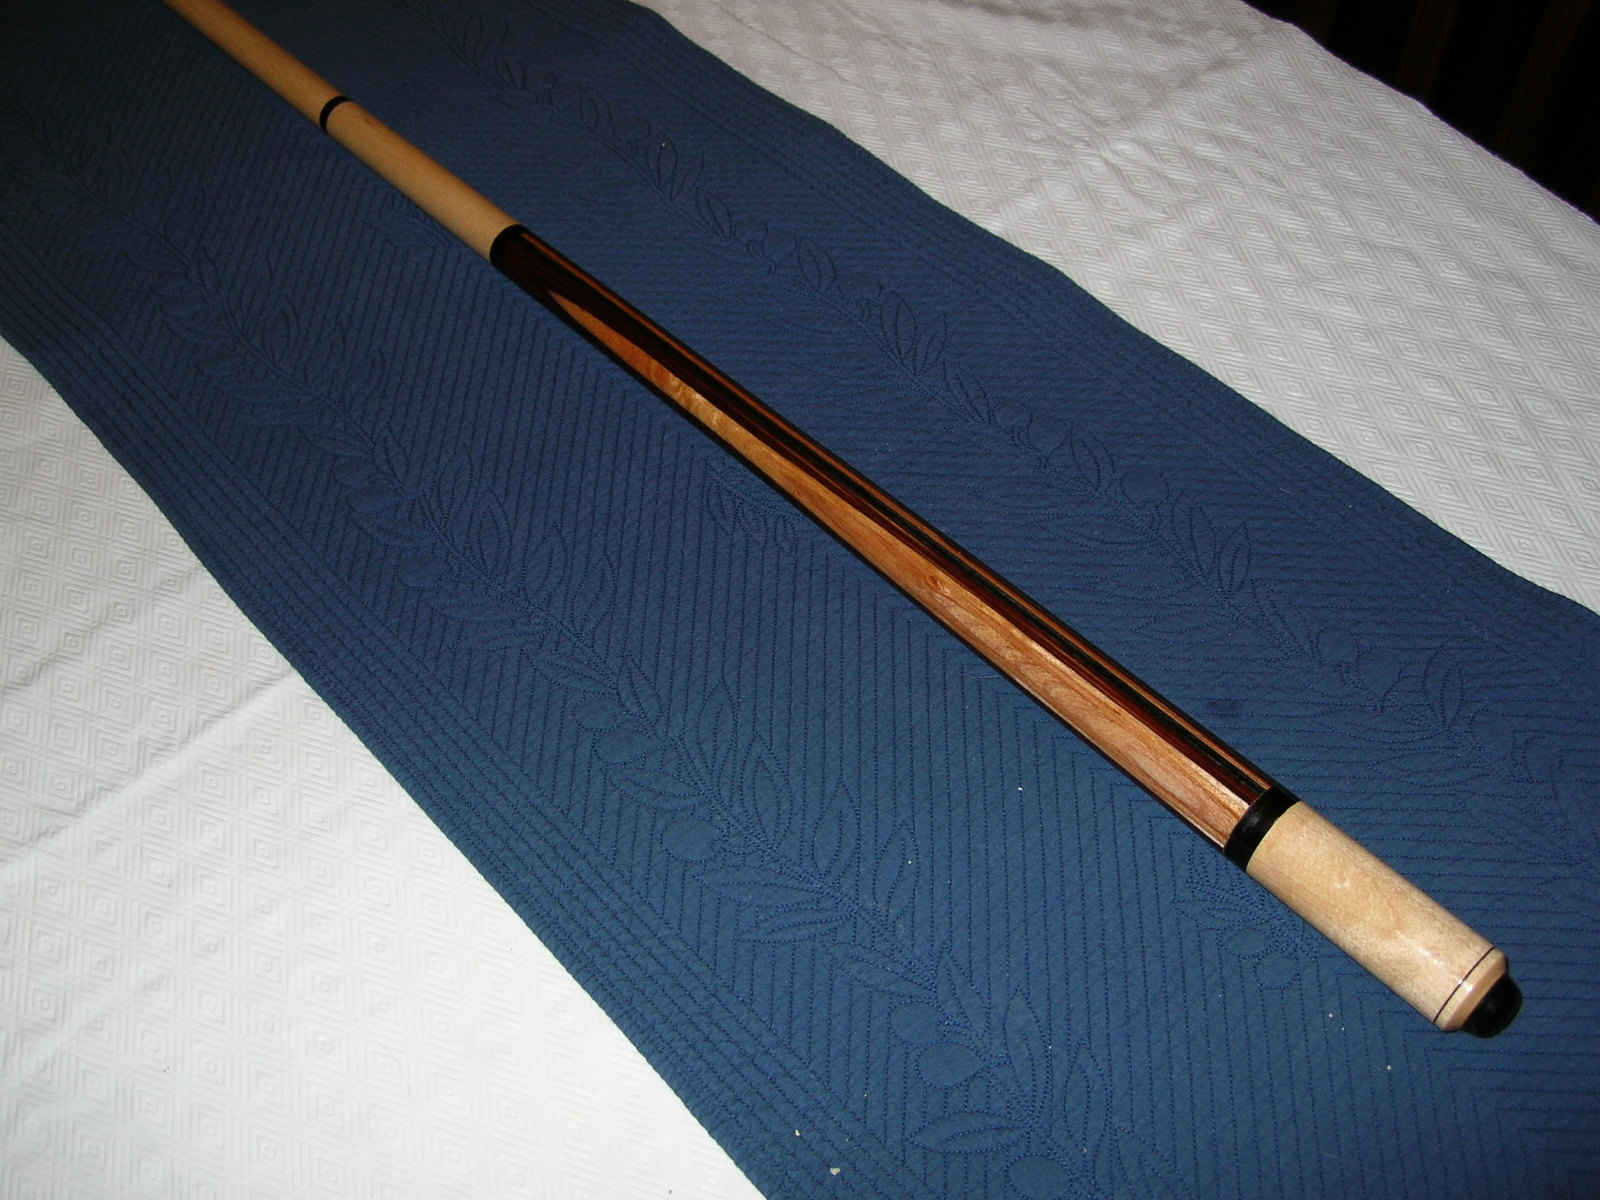 The finised cue